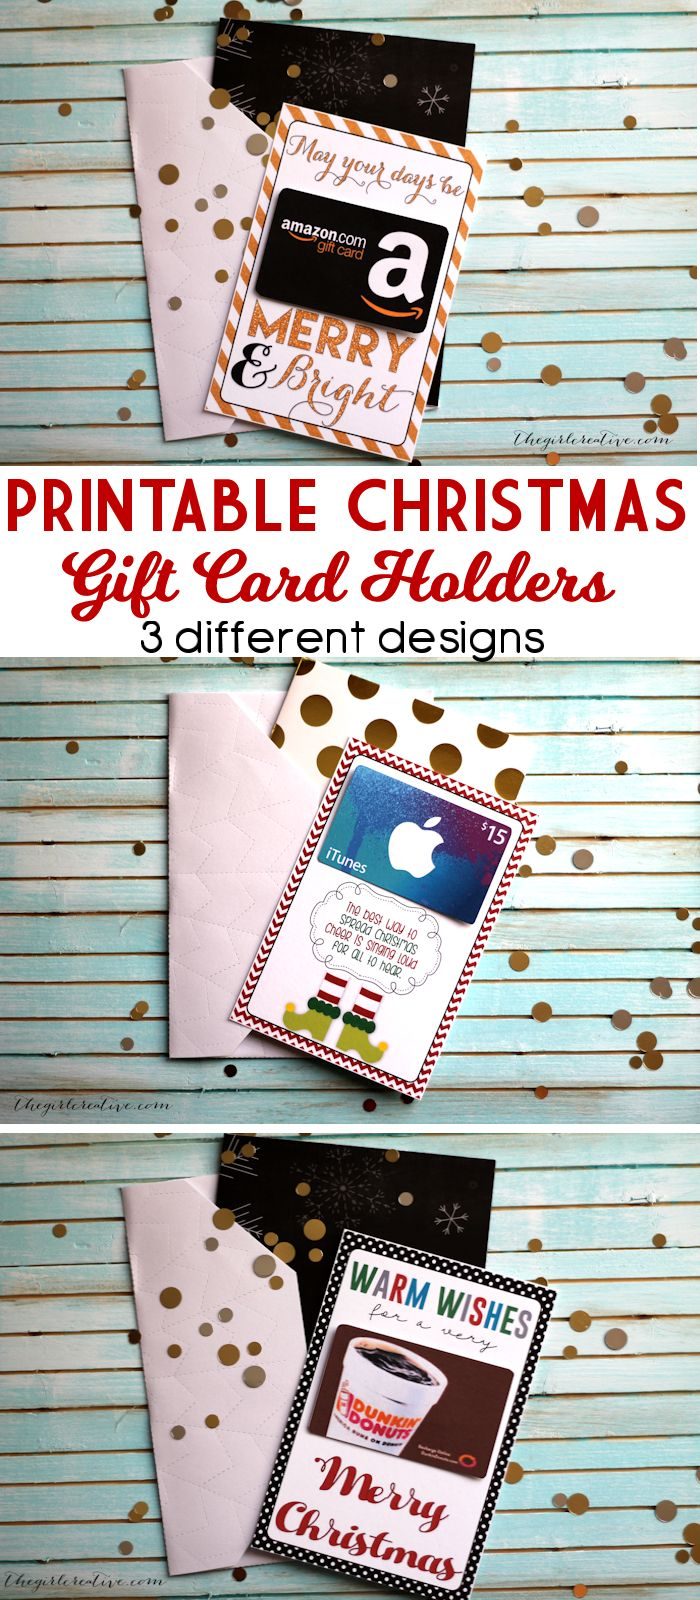 83 best printables images on Pinterest | Crafts, Free printable and ...